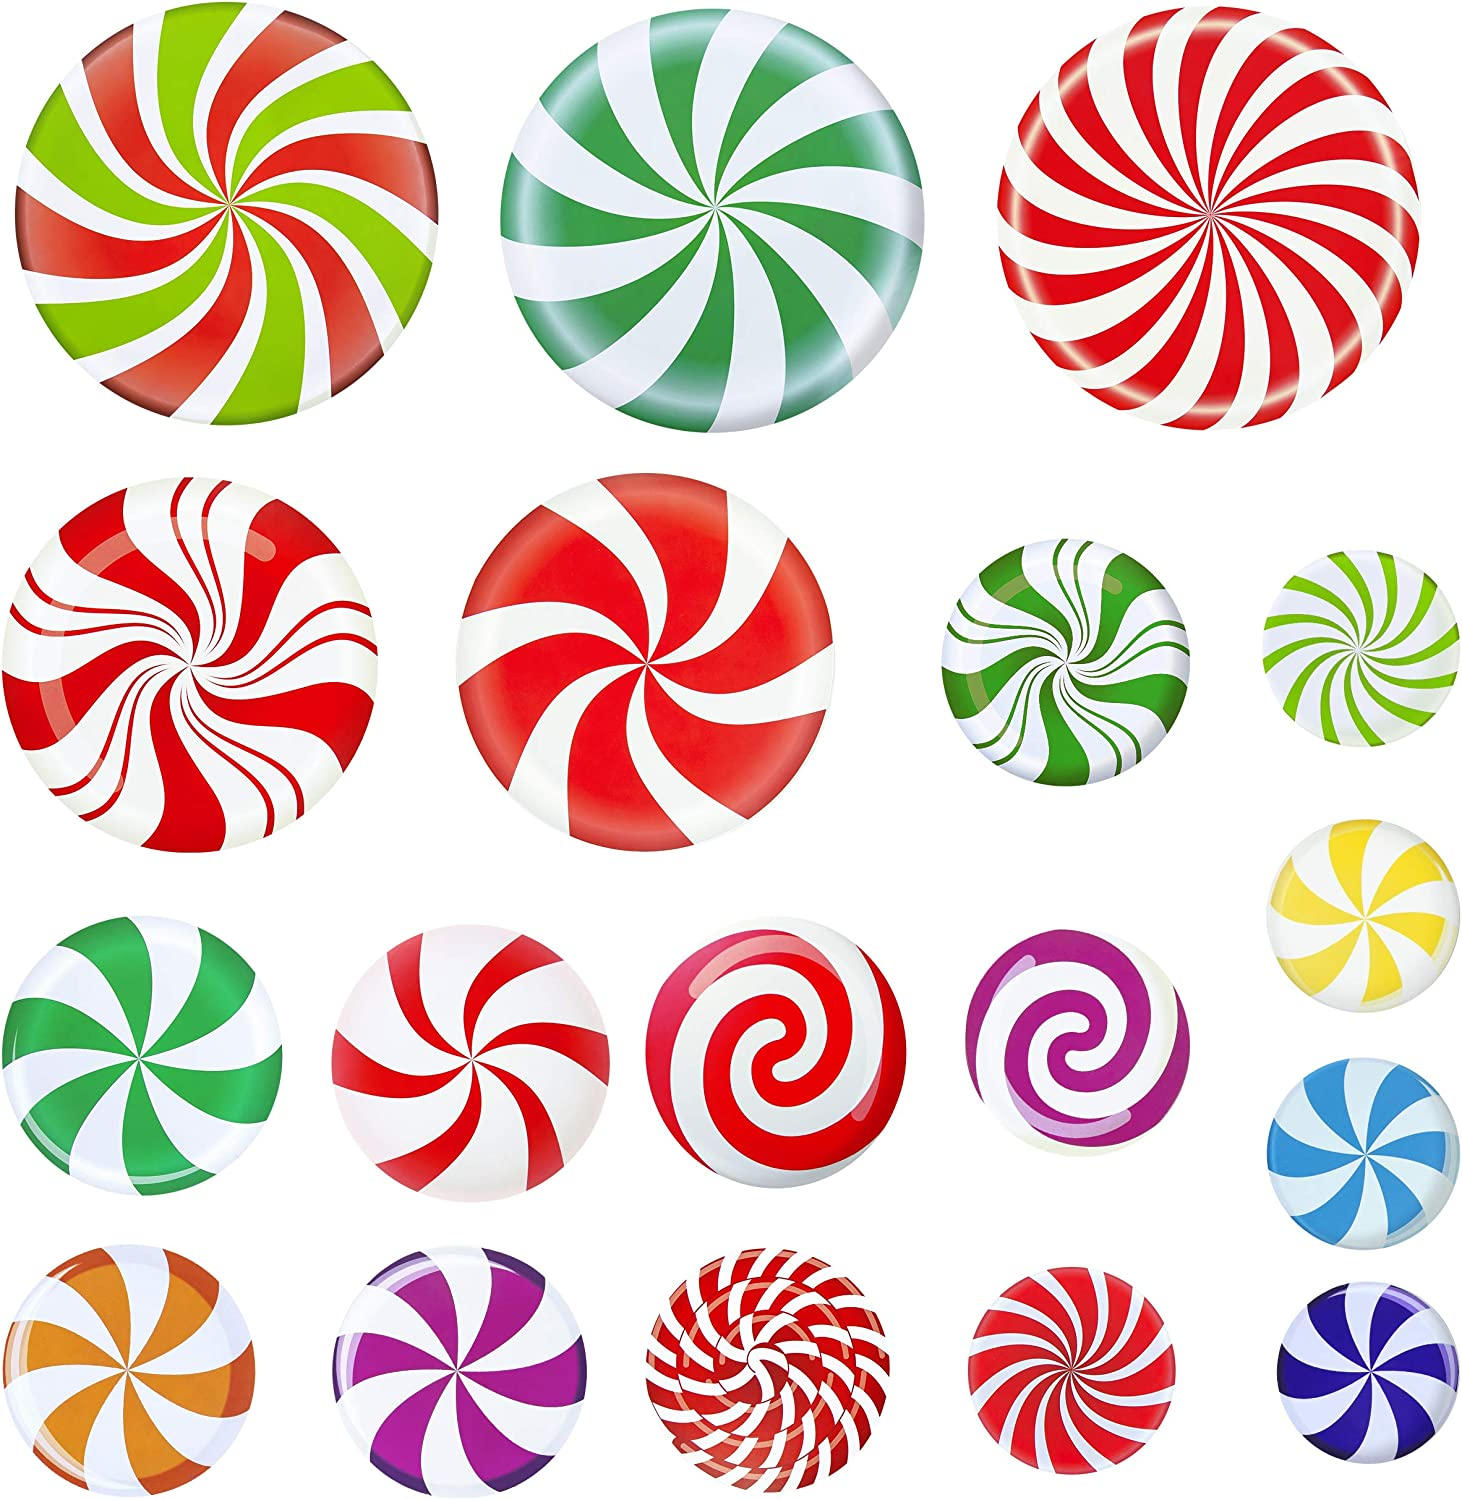 OFFicial store Peppermint Floor Decals 18Pcs Sti Christmas Sale item Self-Adhesive